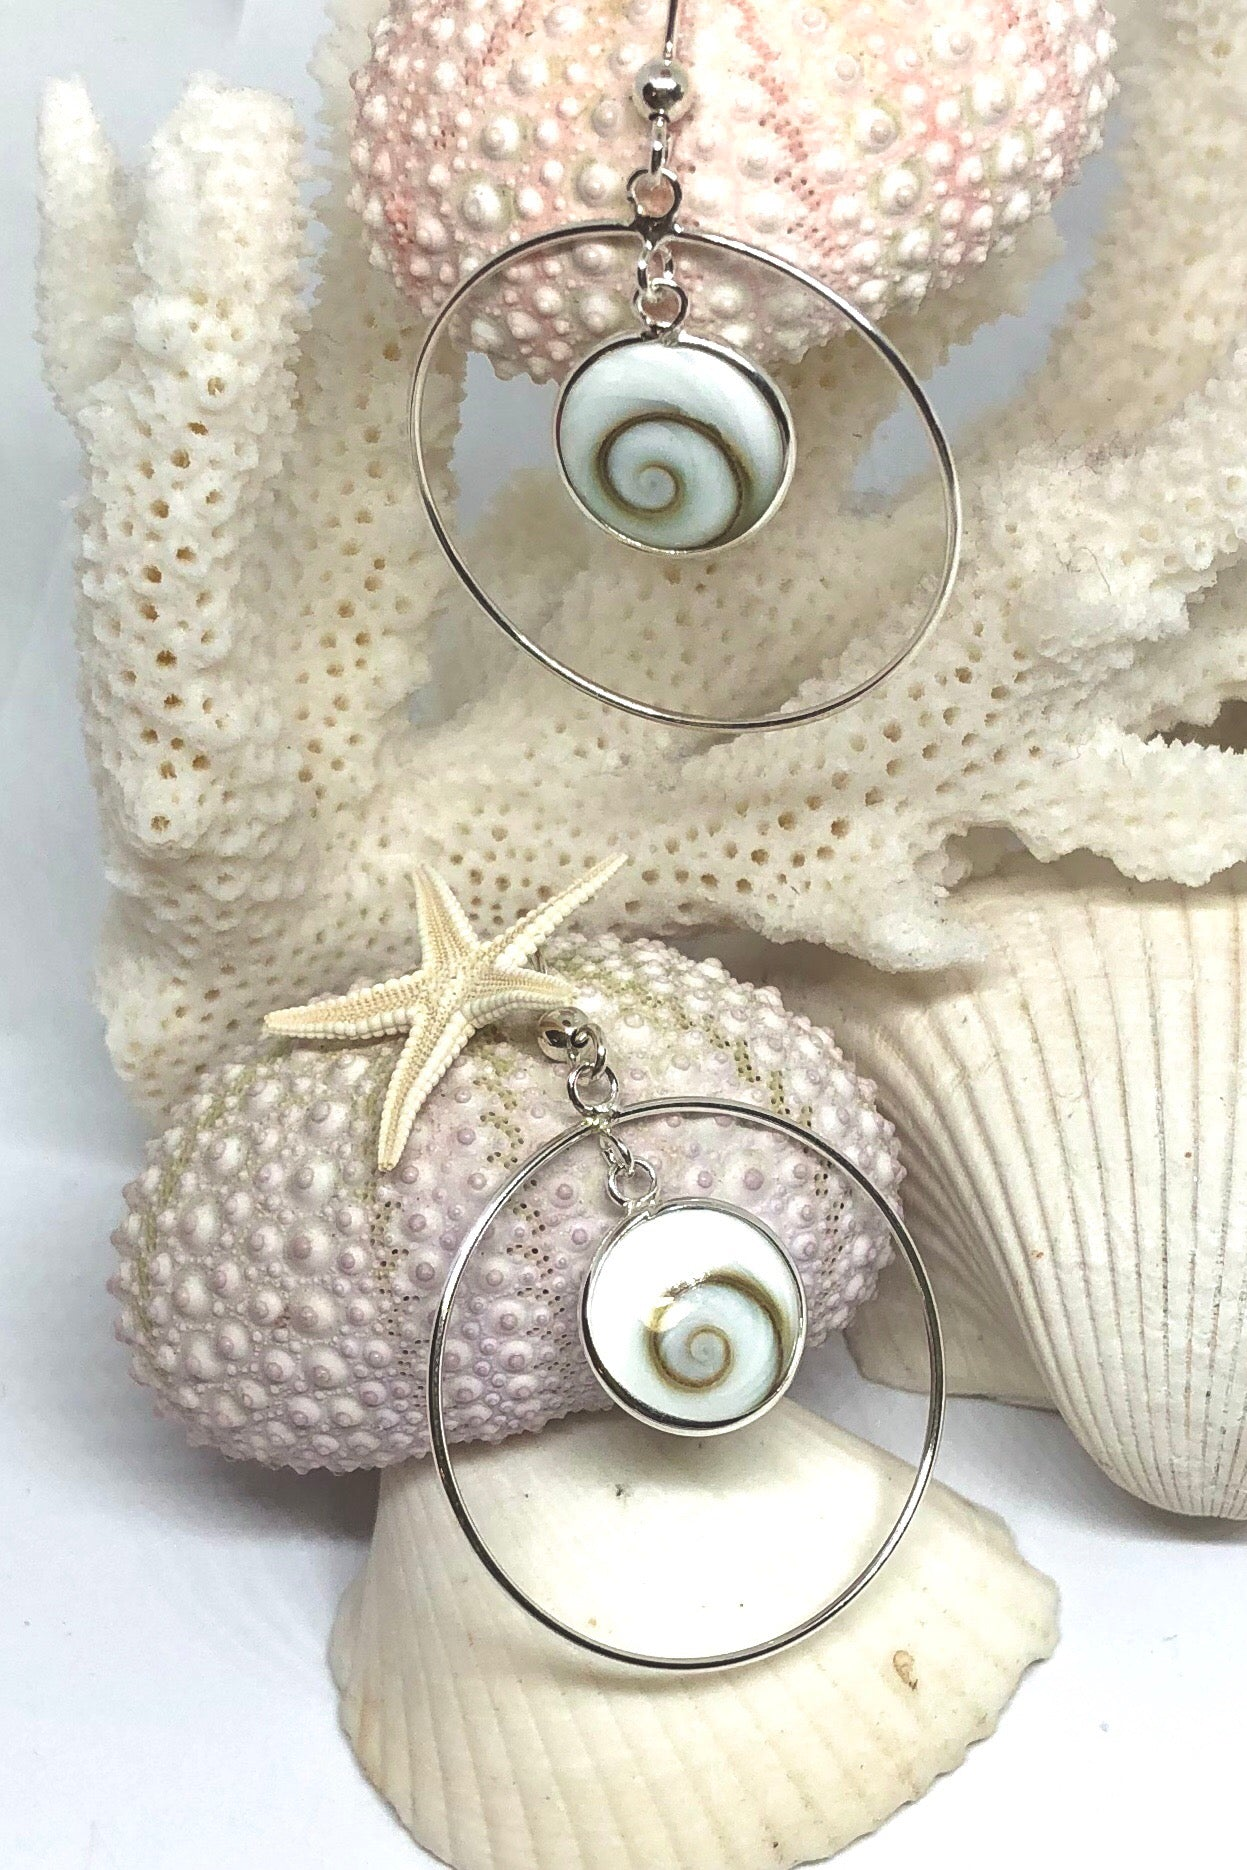 A special piece of jewellery, the Earrings Cay Shiva Shell Hoop have approximate 1 cm length of shell, hoop is 3cm size, 925 solid silver hoop and hook, delicate little round shiva shell design.